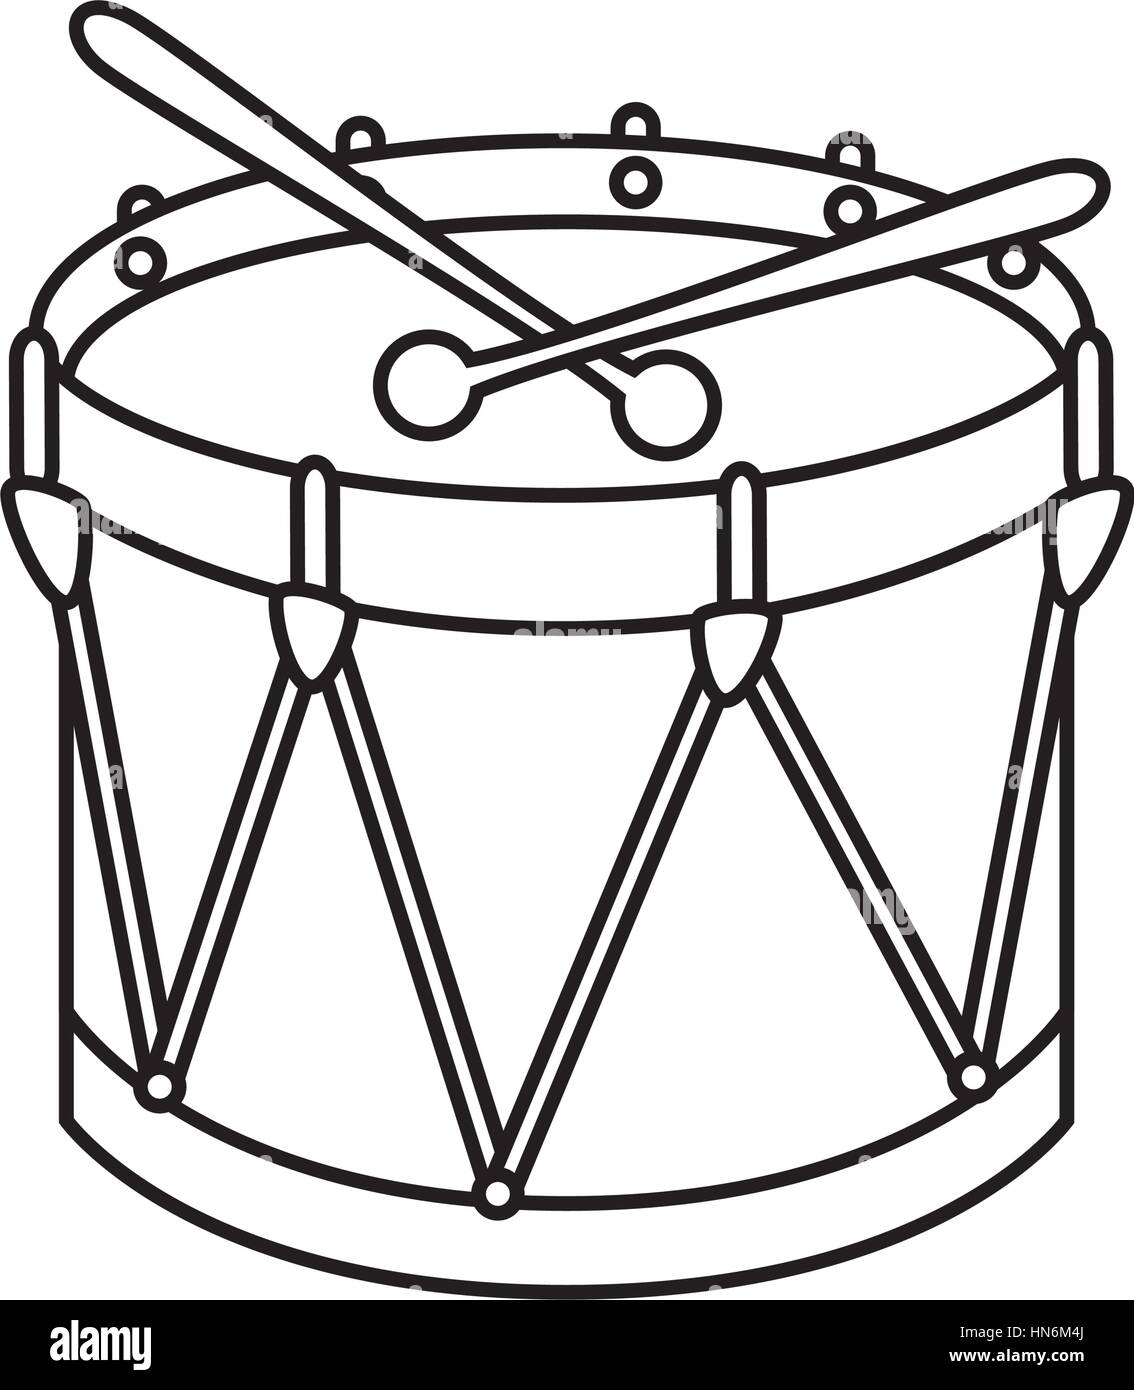 Drum Instrument Isolated Icon Vector Illustration Design